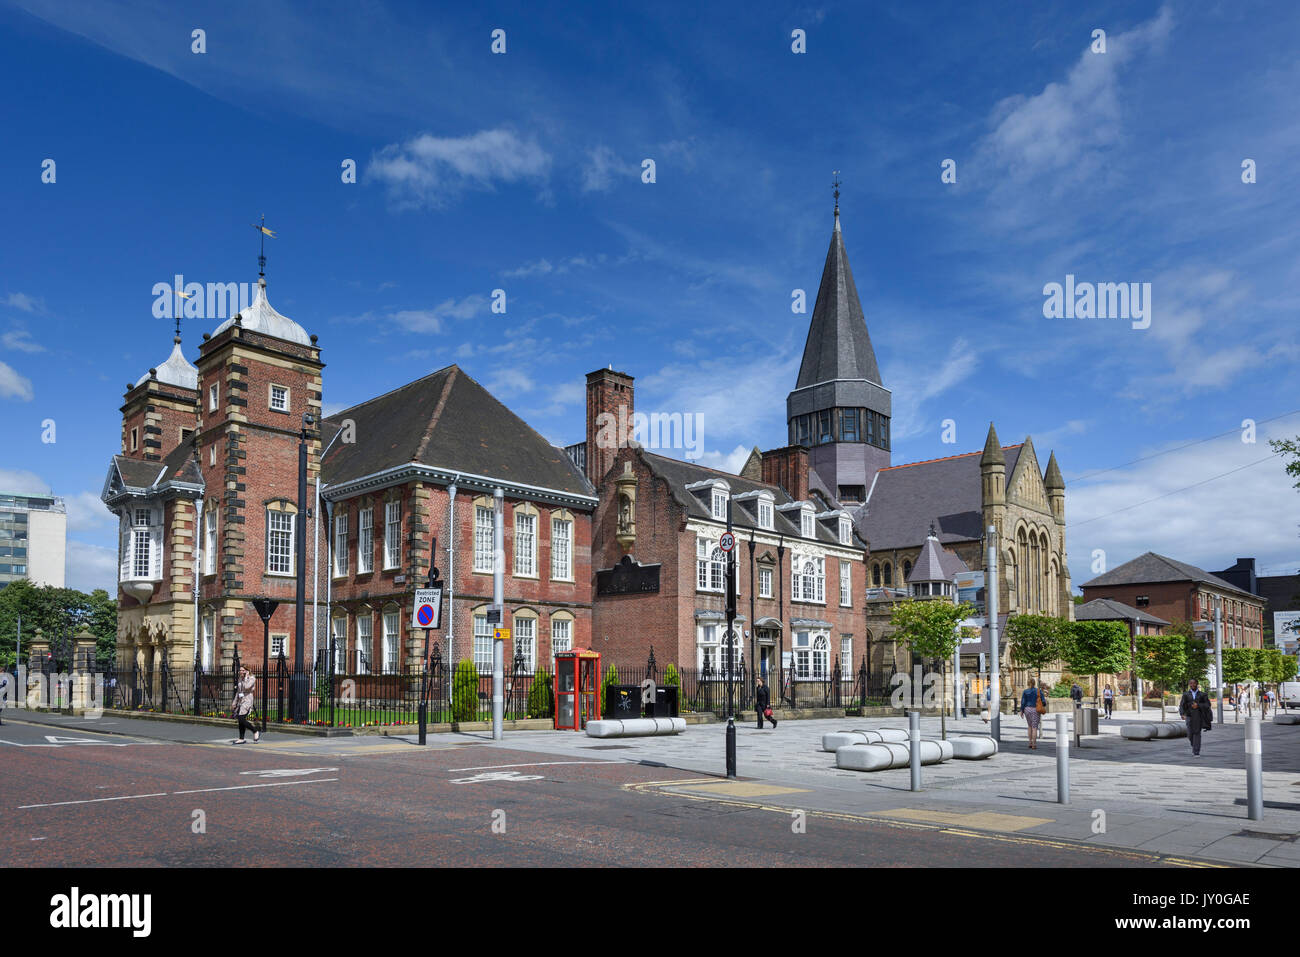 College House Grade II listed building, Newcastle upon Tyne, Once Dame Allan's School now Careers Centre for Northumbria University. - Stock Image